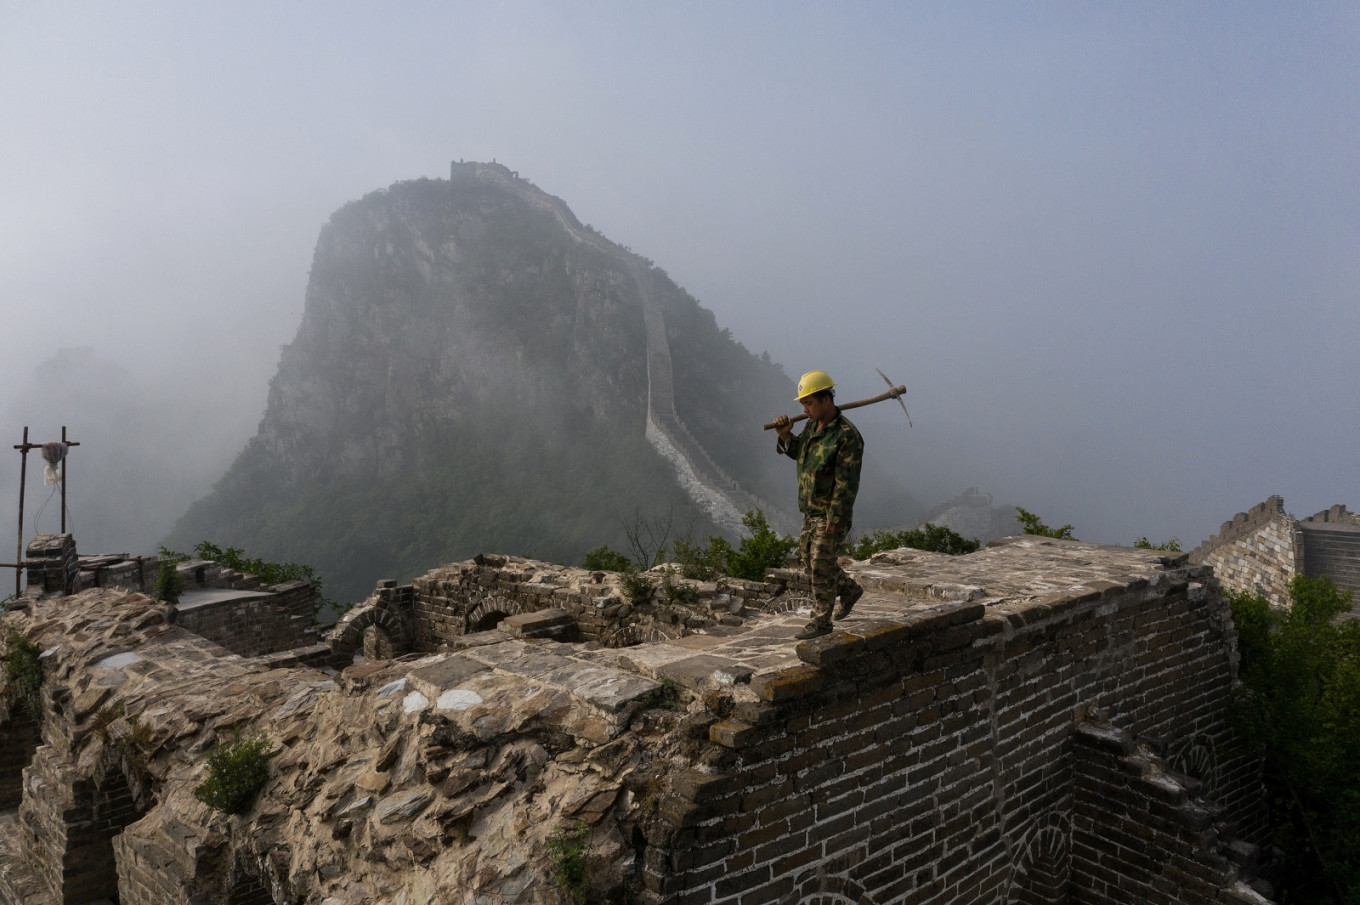 Mules Tools And Old Bricks Rebuilding China S Great Wall Art Culture The Jakarta Post